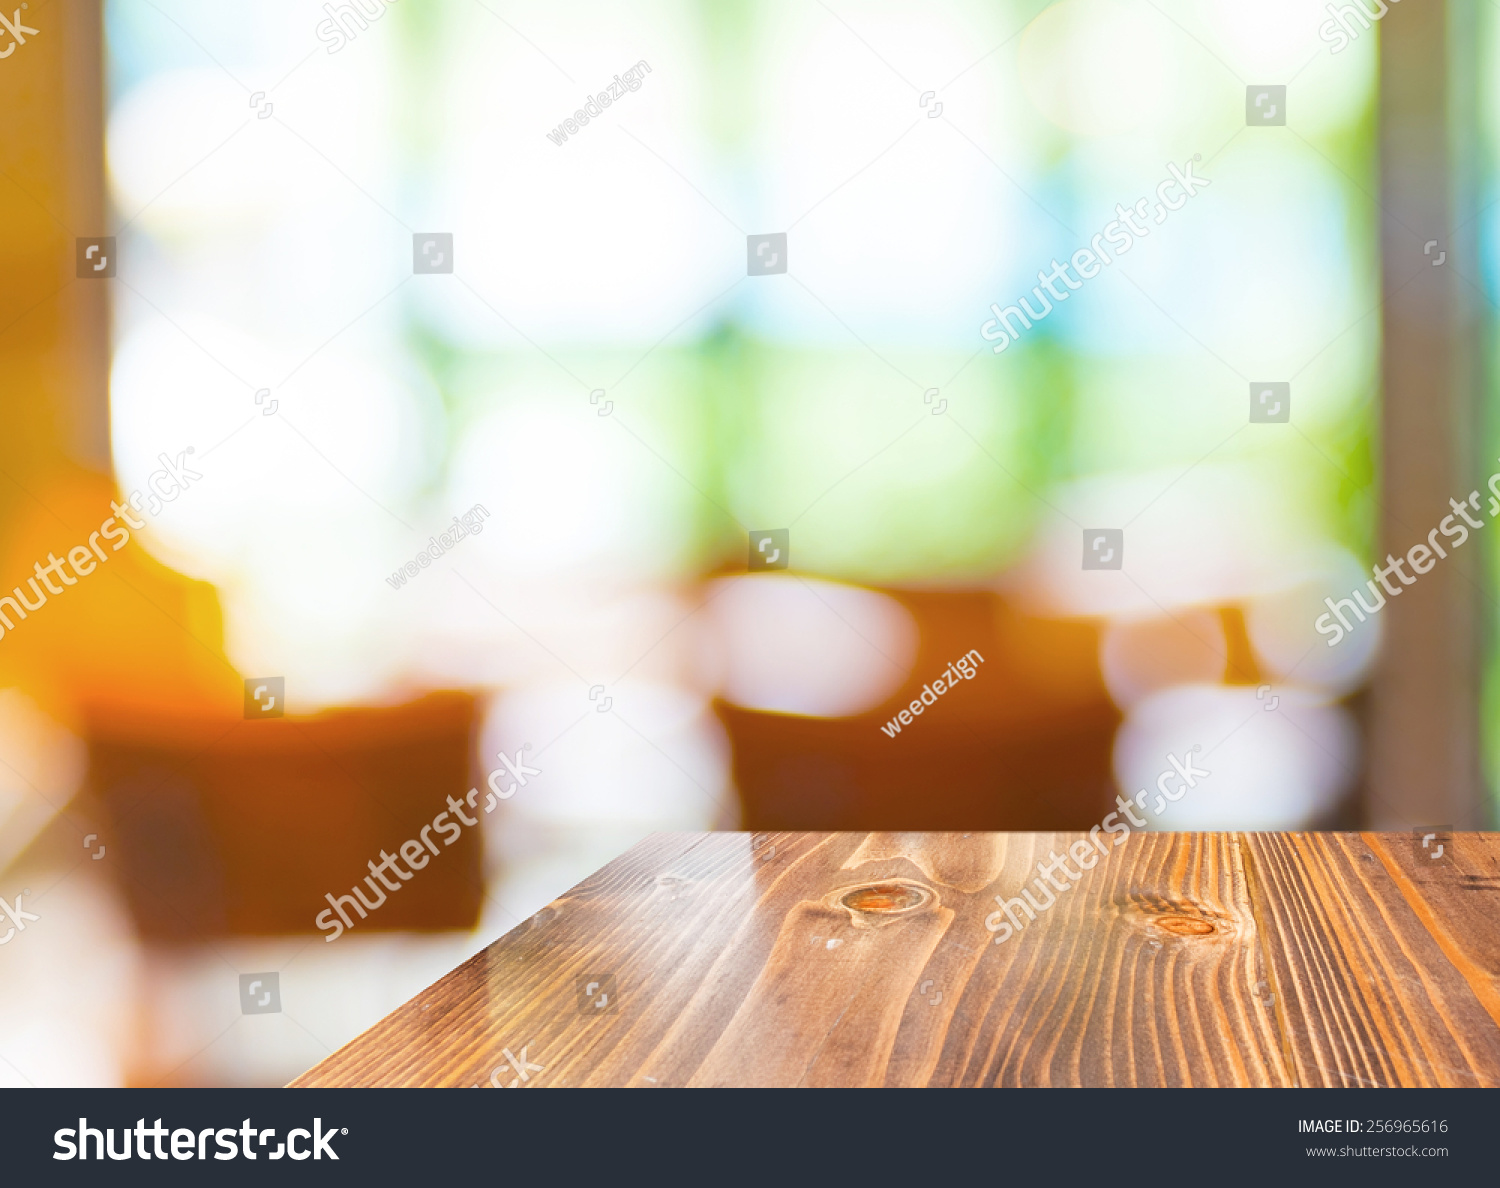 Empty wood table and blurred living room background stock photo - Empty Wood Table At Blurred Garden Cafe Background